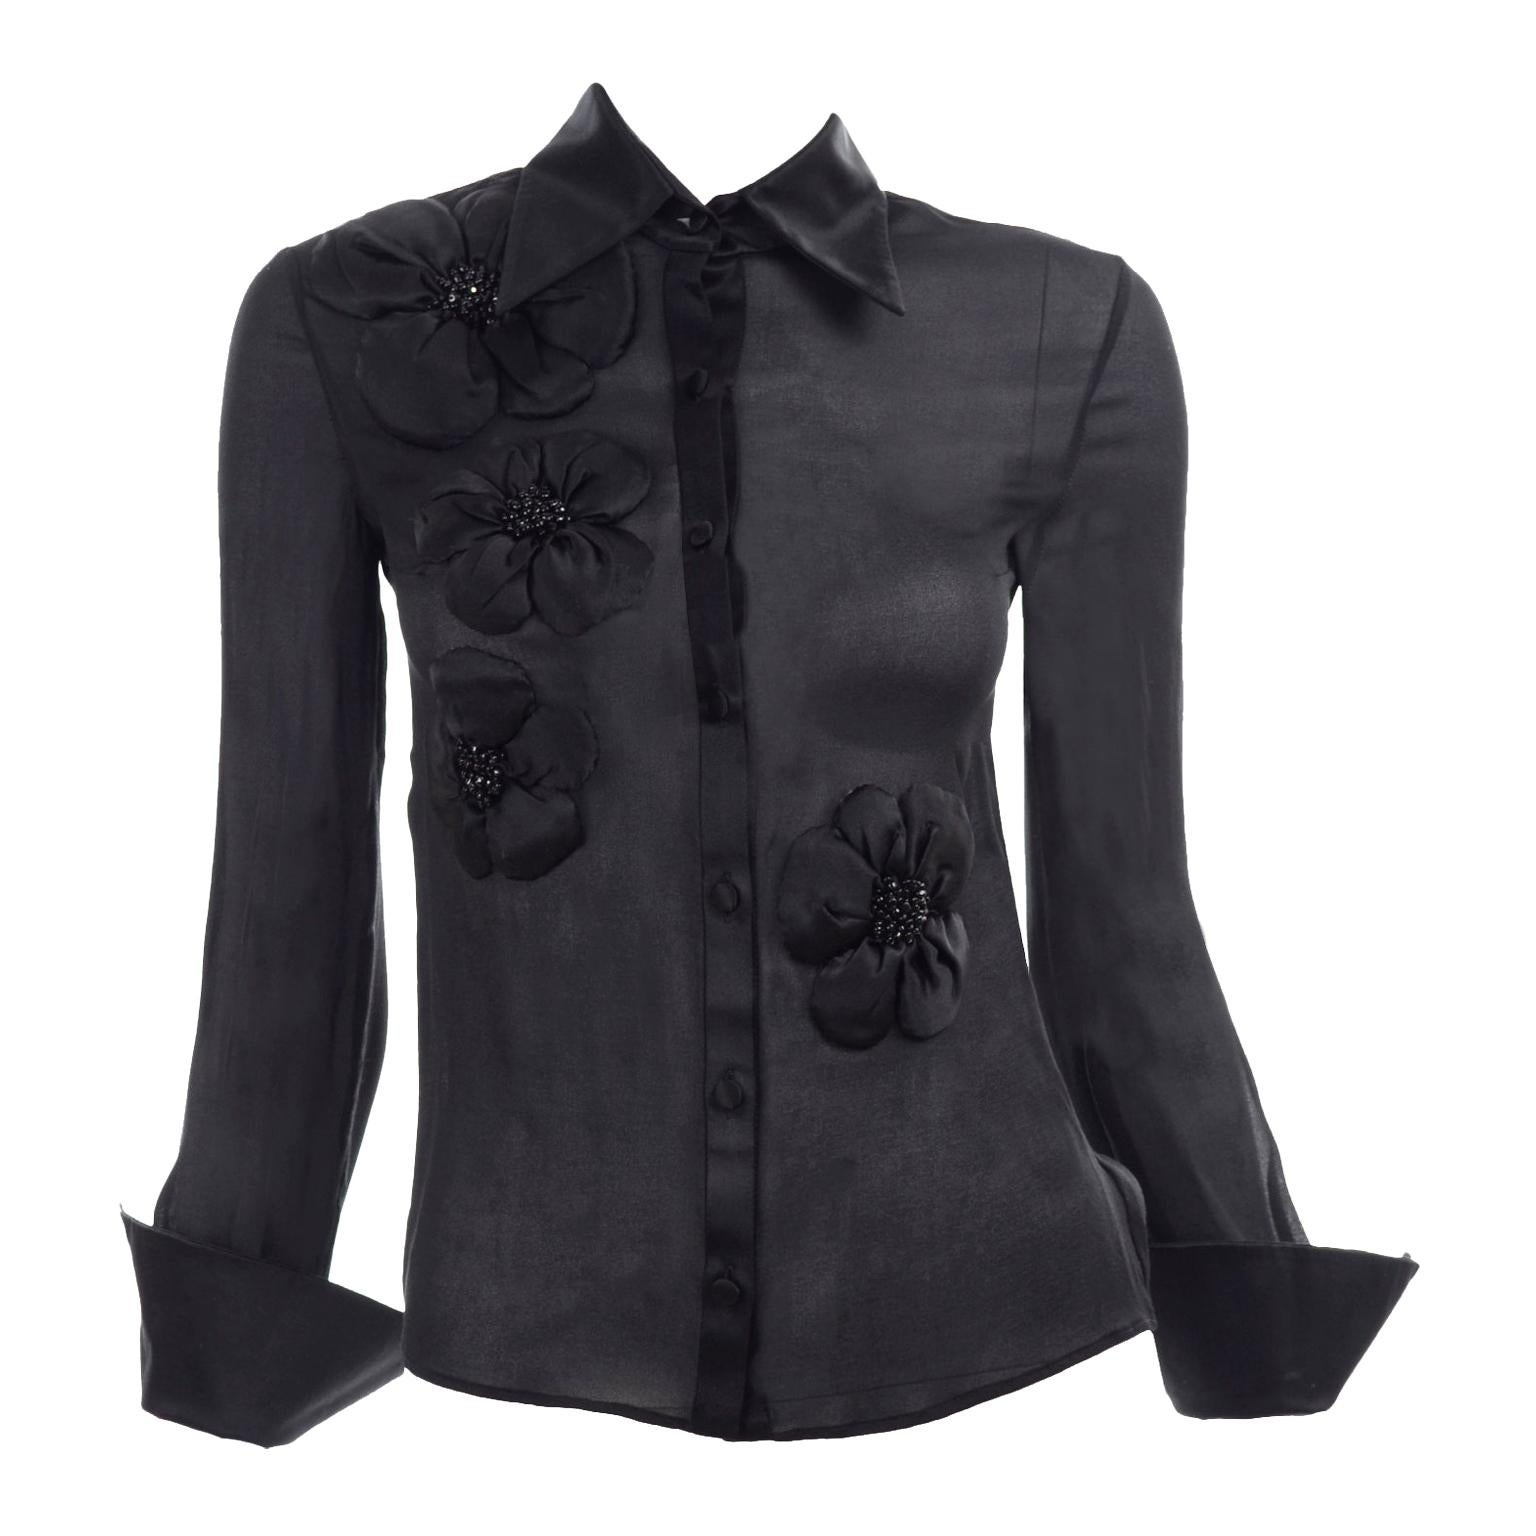 Valentino Black Sheer Chiffon Blouse With Beaded Silk Floral Appliques